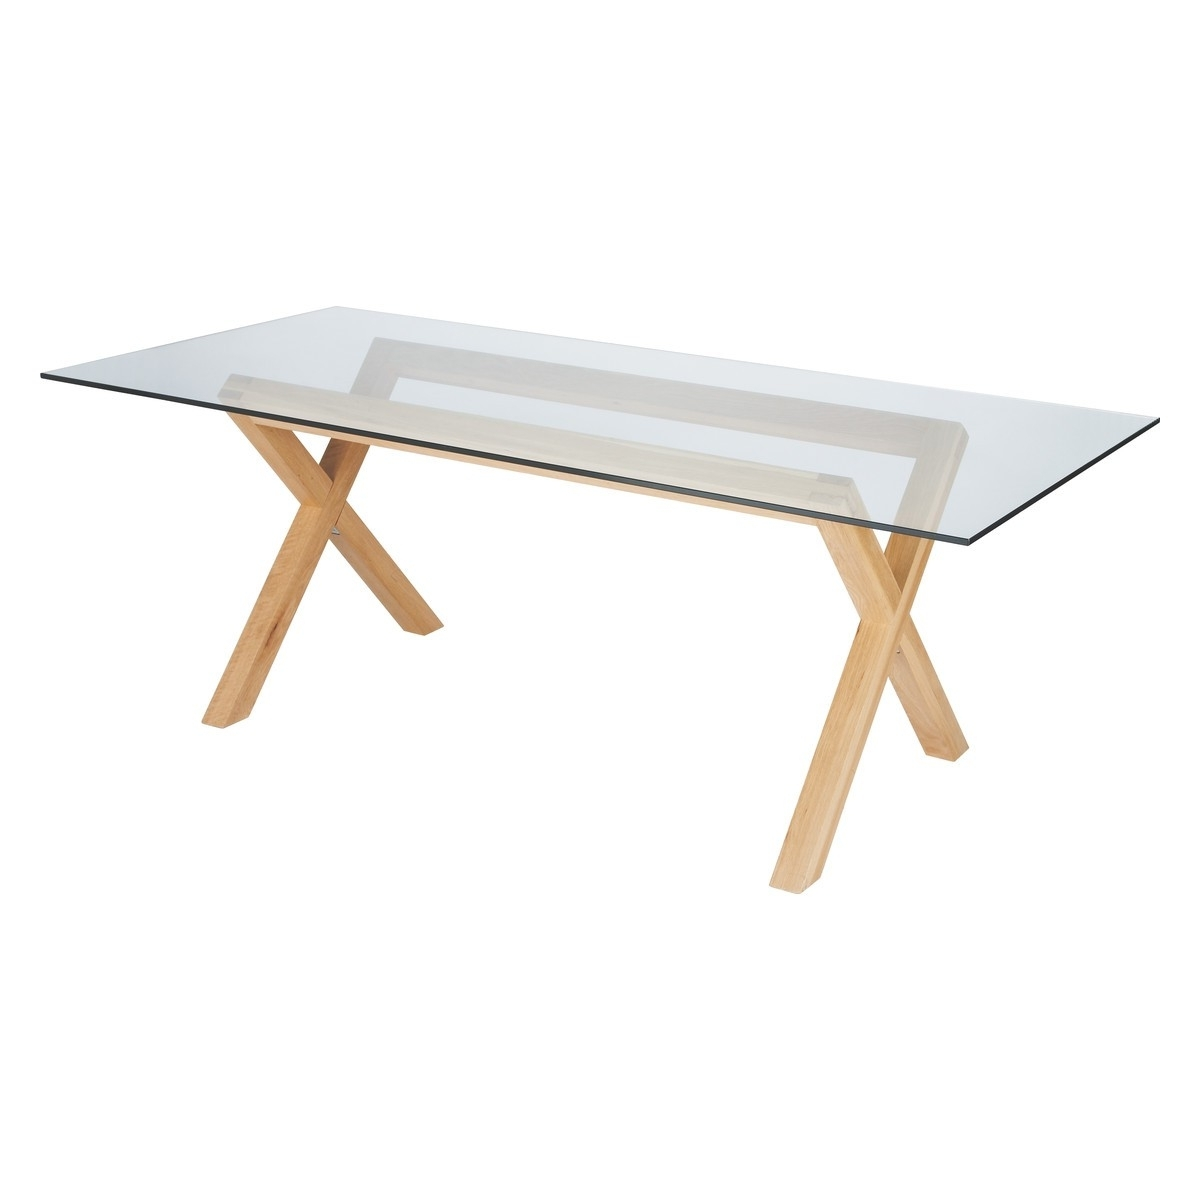 Favorite Oak 6 Seater Dining Tables With Regard To Dublin 8 Seater Oak And Glass Dining Table (View 5 of 25)